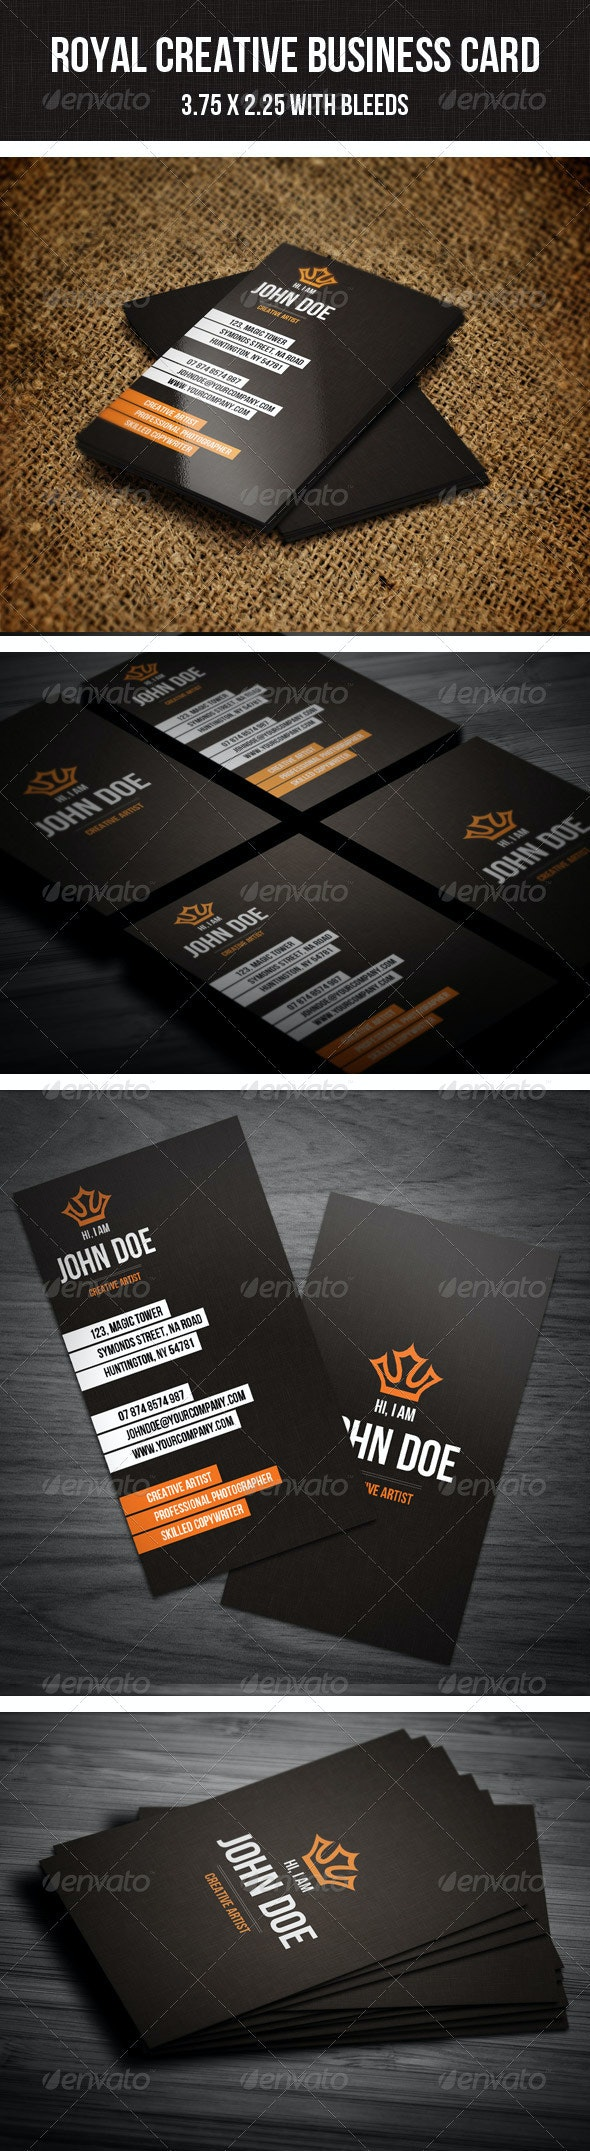 Royal Creative Business Card - Corporate Business Cards